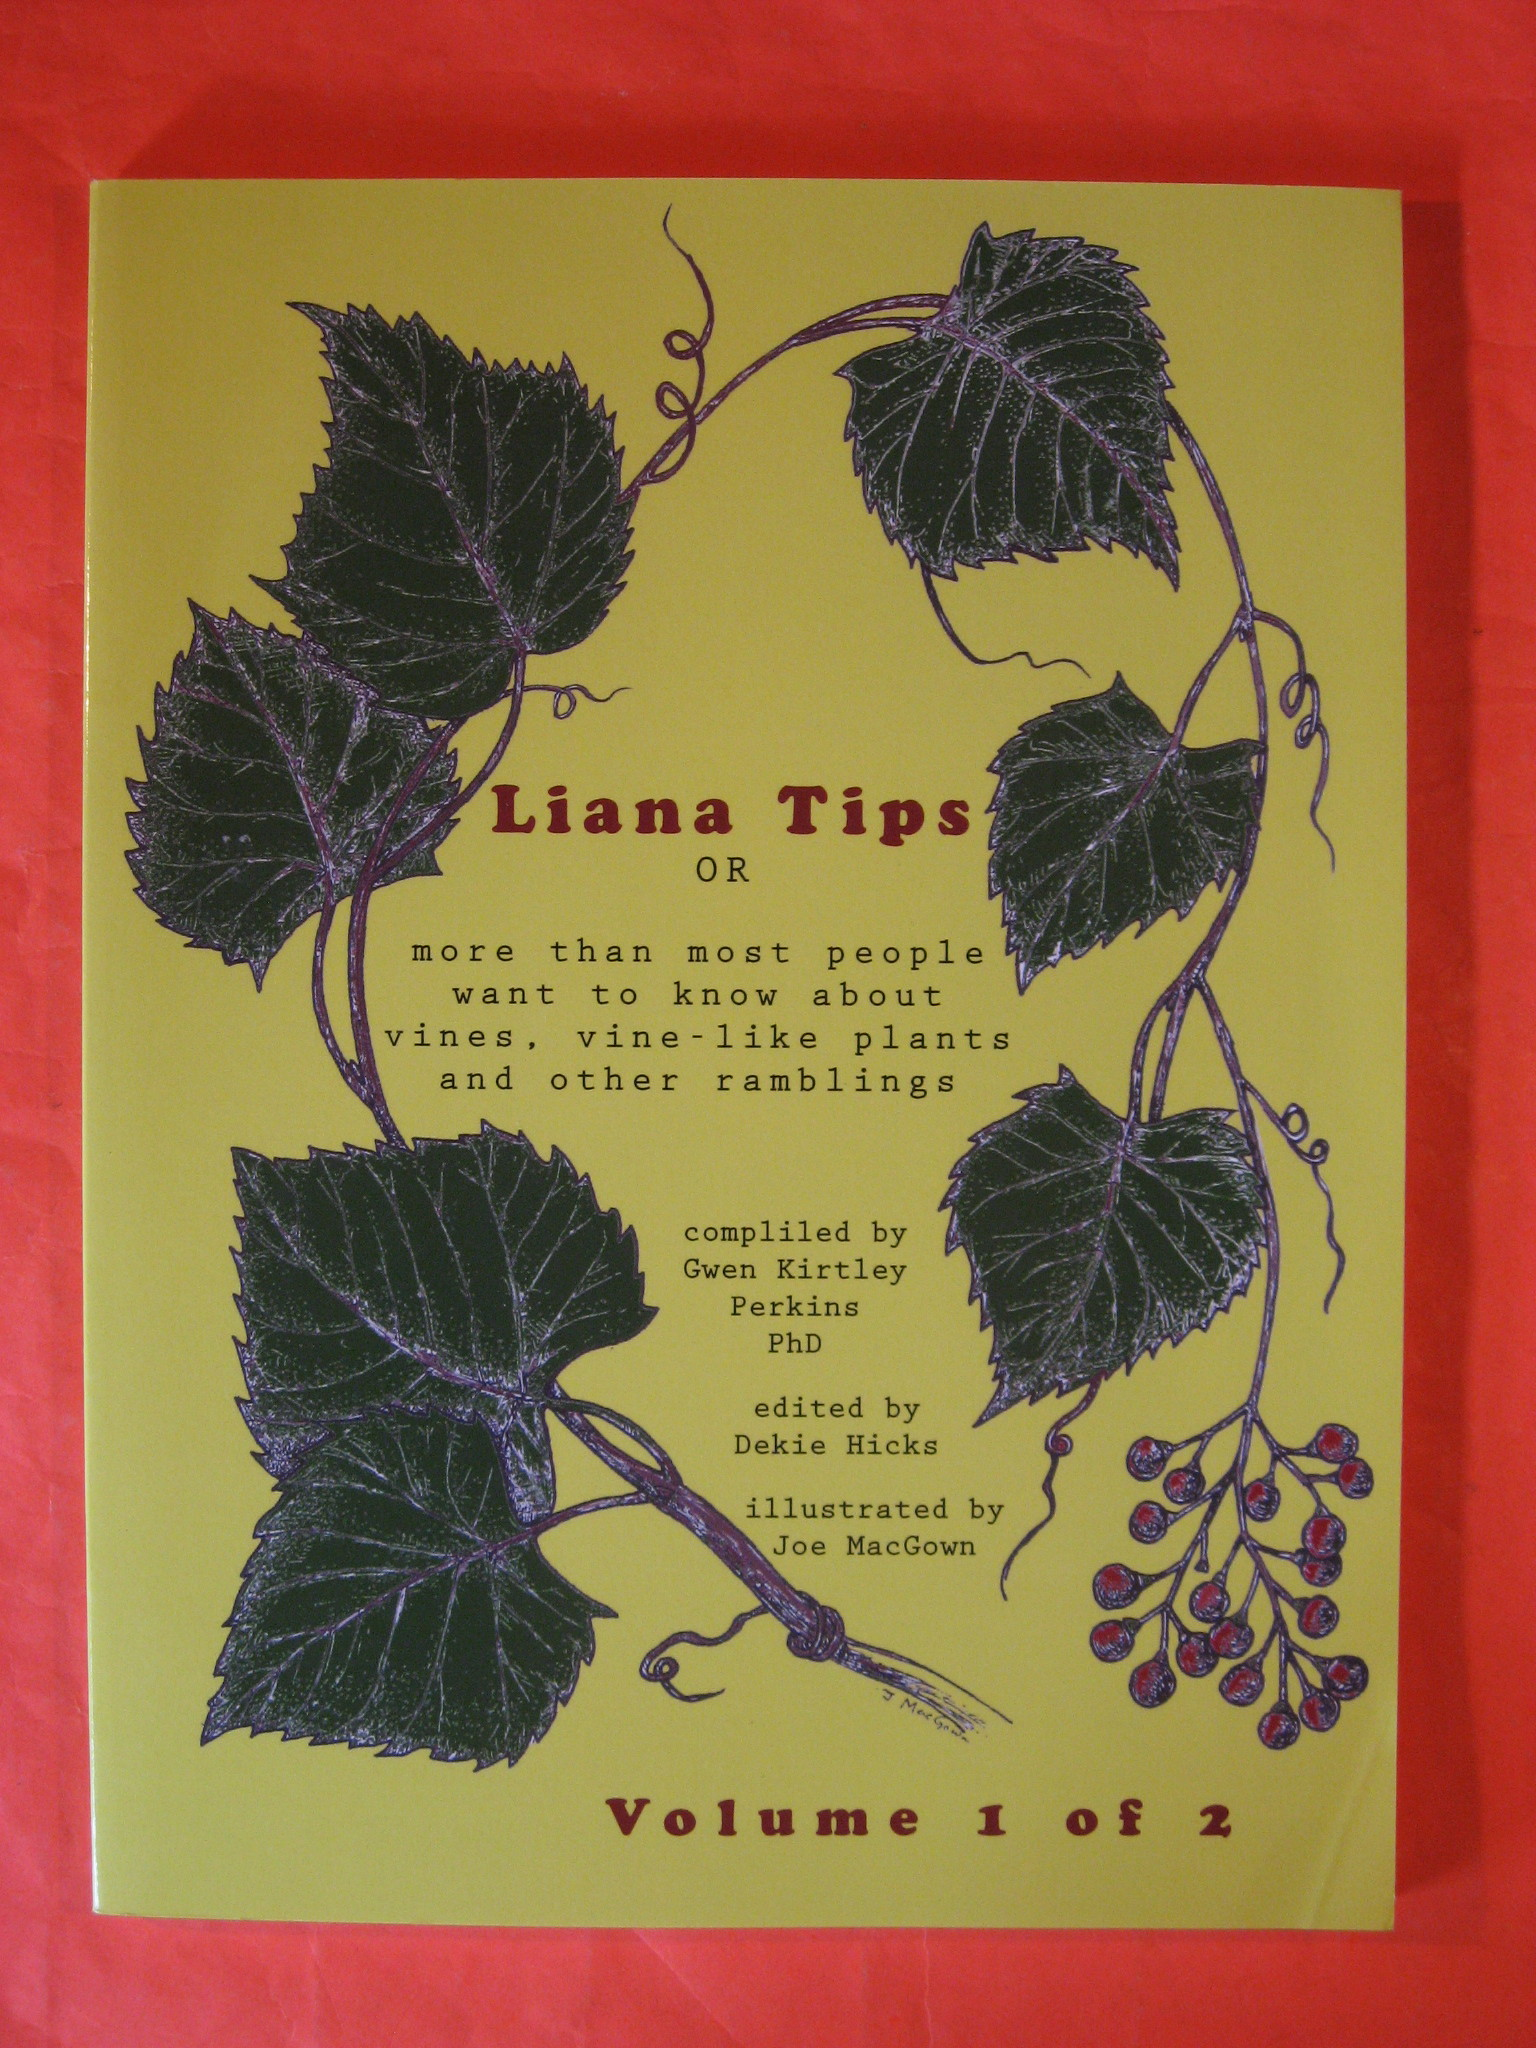 Liana Tips: Or More Than Most People Want To Know About Vines, Vine-Like Plants and Other Ramblings (Volume 1), Perkins, Gwen Kirtley; Hicks, Dekie